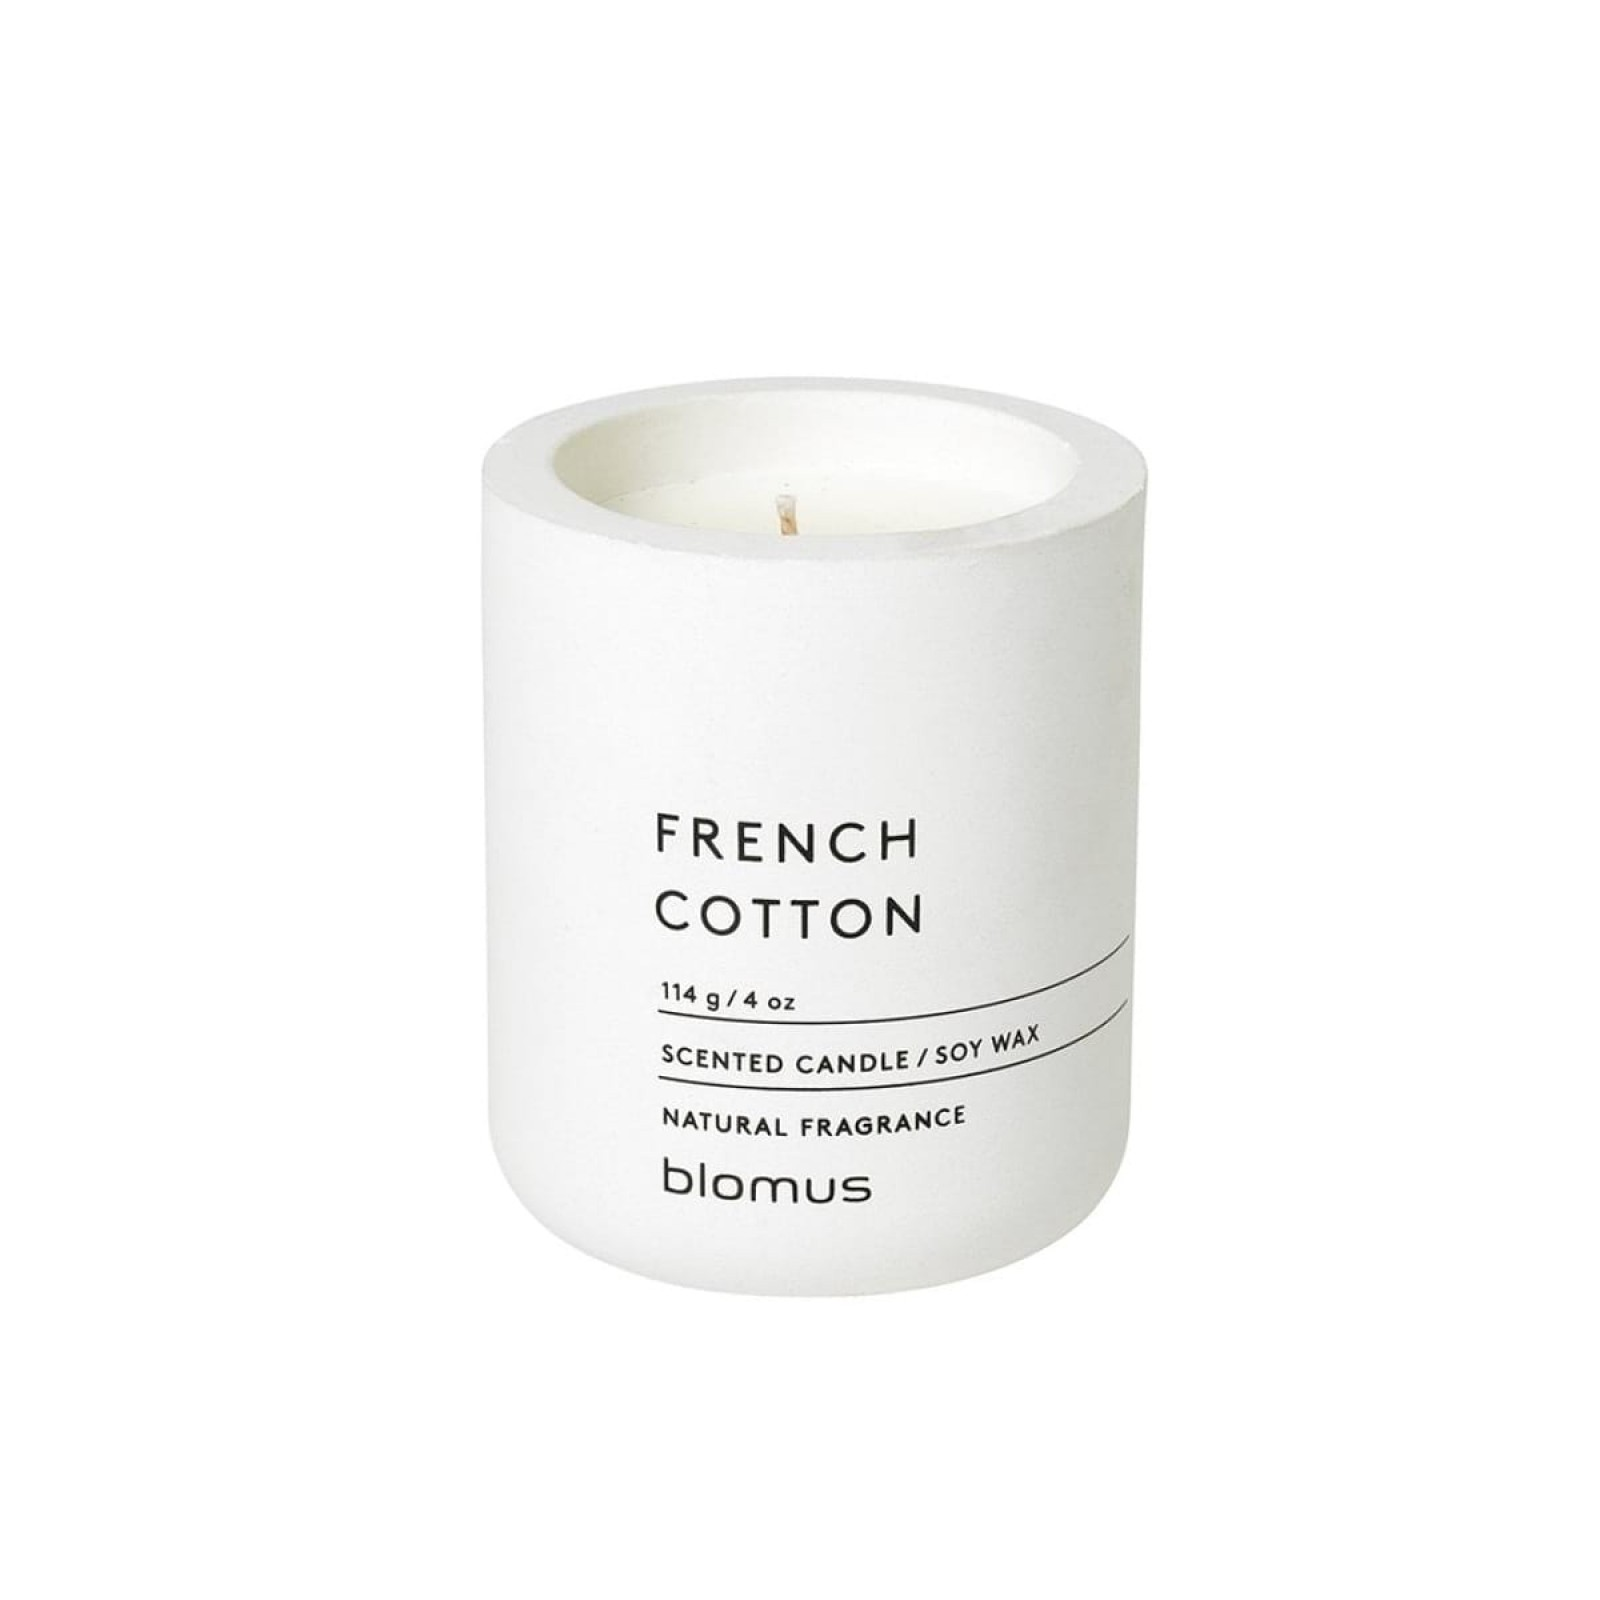 Scented Candle FRAGA S French Cotton - Blomus